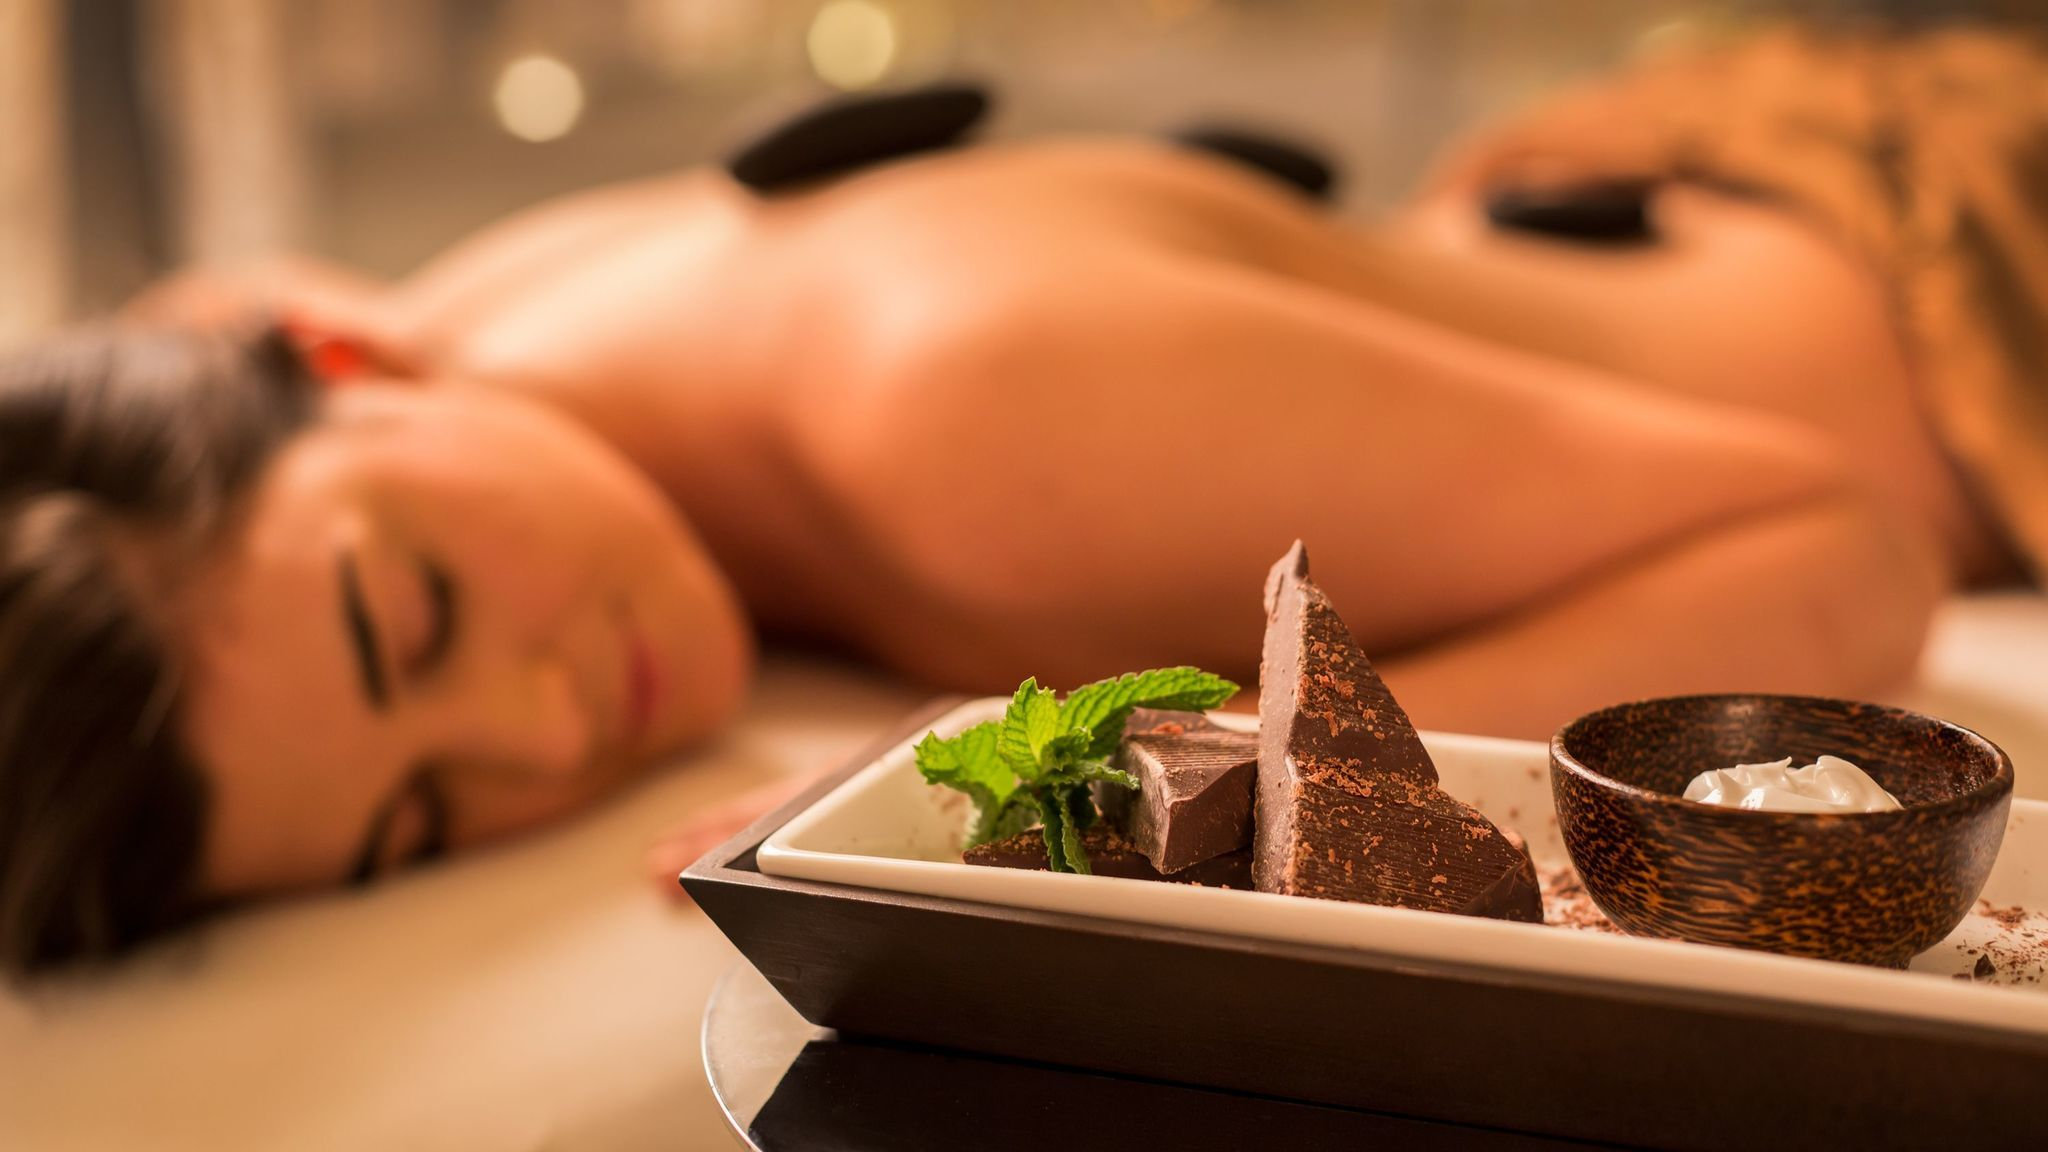 Chocolate from confectioner Valerie Gordon is at the heart of a limited edition series of treatments recently launched at the spa at the Ritz-Carlton hotel in downtown Los Angeles.